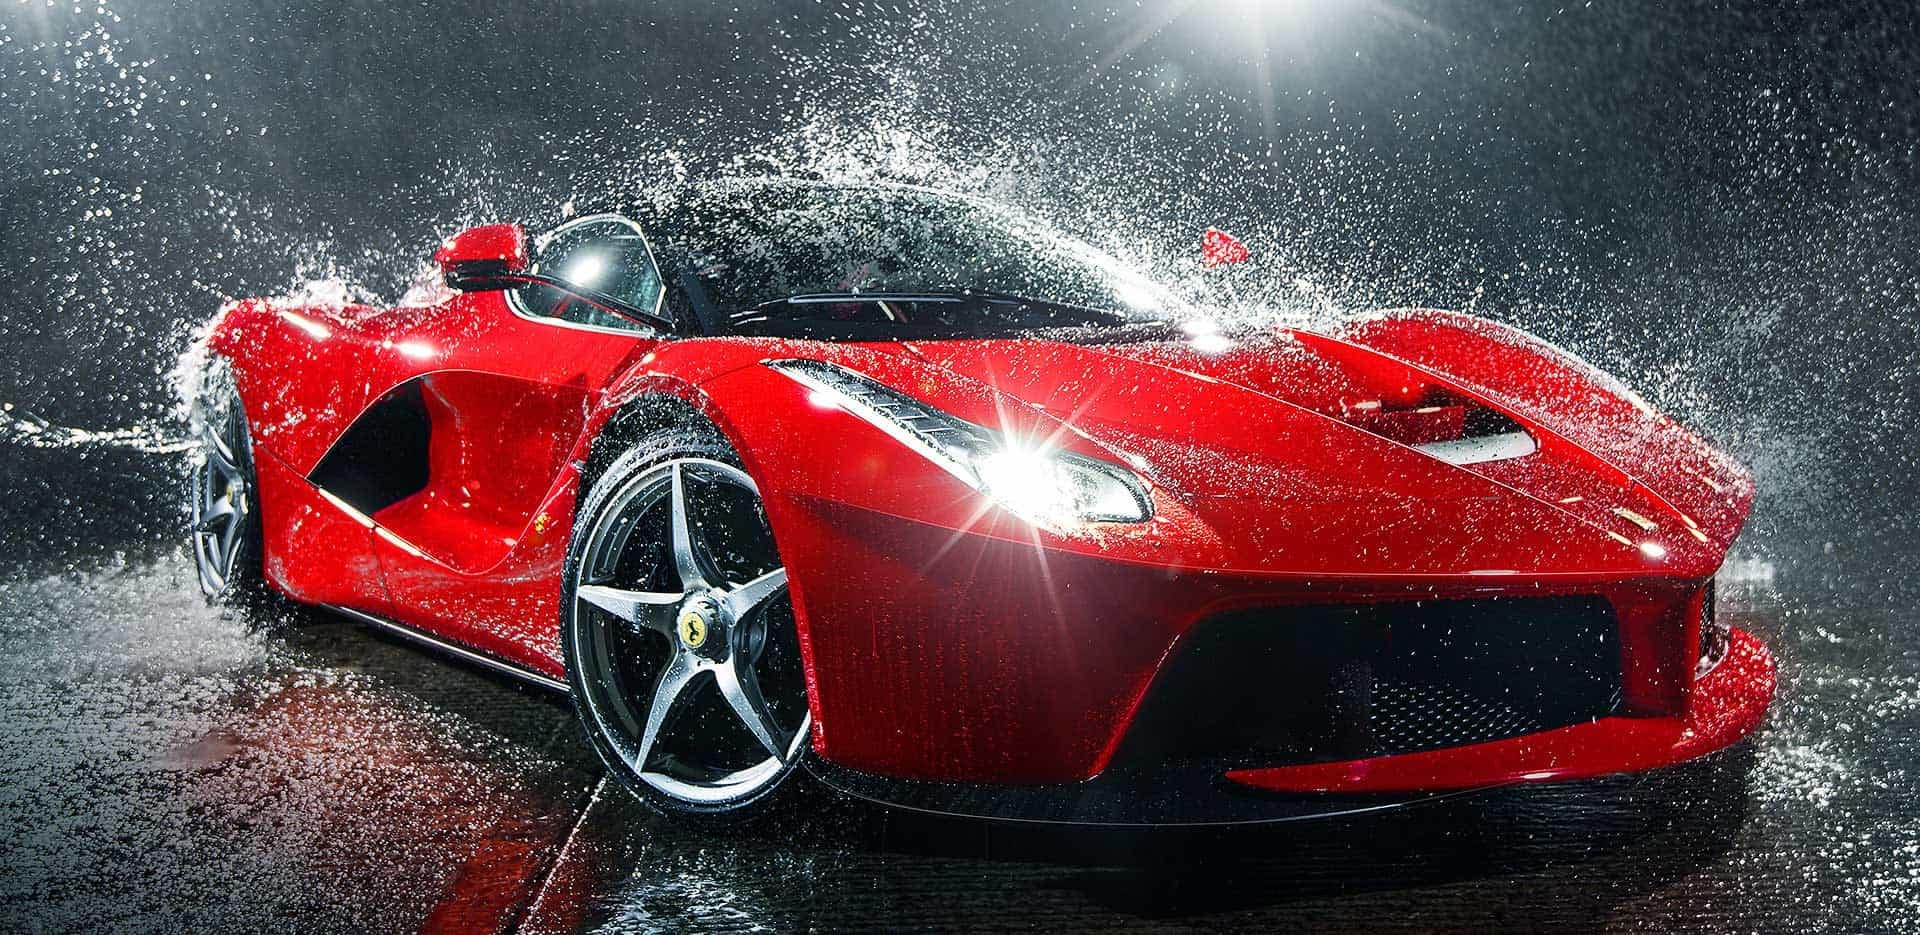 Car Cleaning Guide: Keep dirt, dust, and germs away from your Ferrari